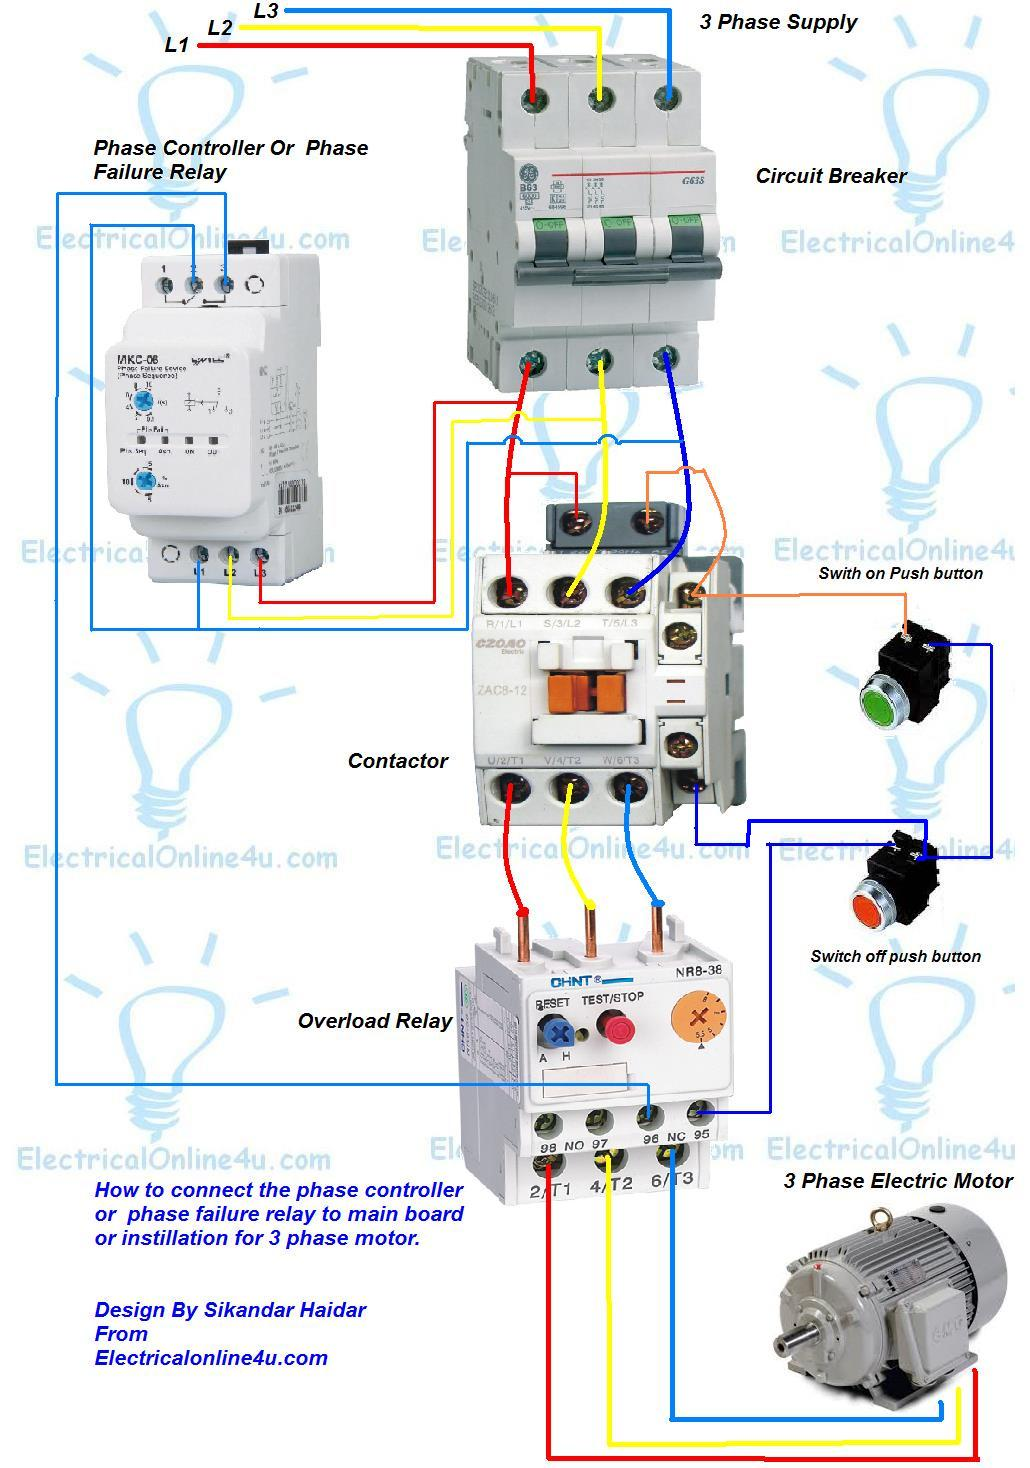 phase controller wiring   phase failure relay diagram 220 3 Phase Wiring Diagram 3 Phase Circuit Breaker Wiring Diagram